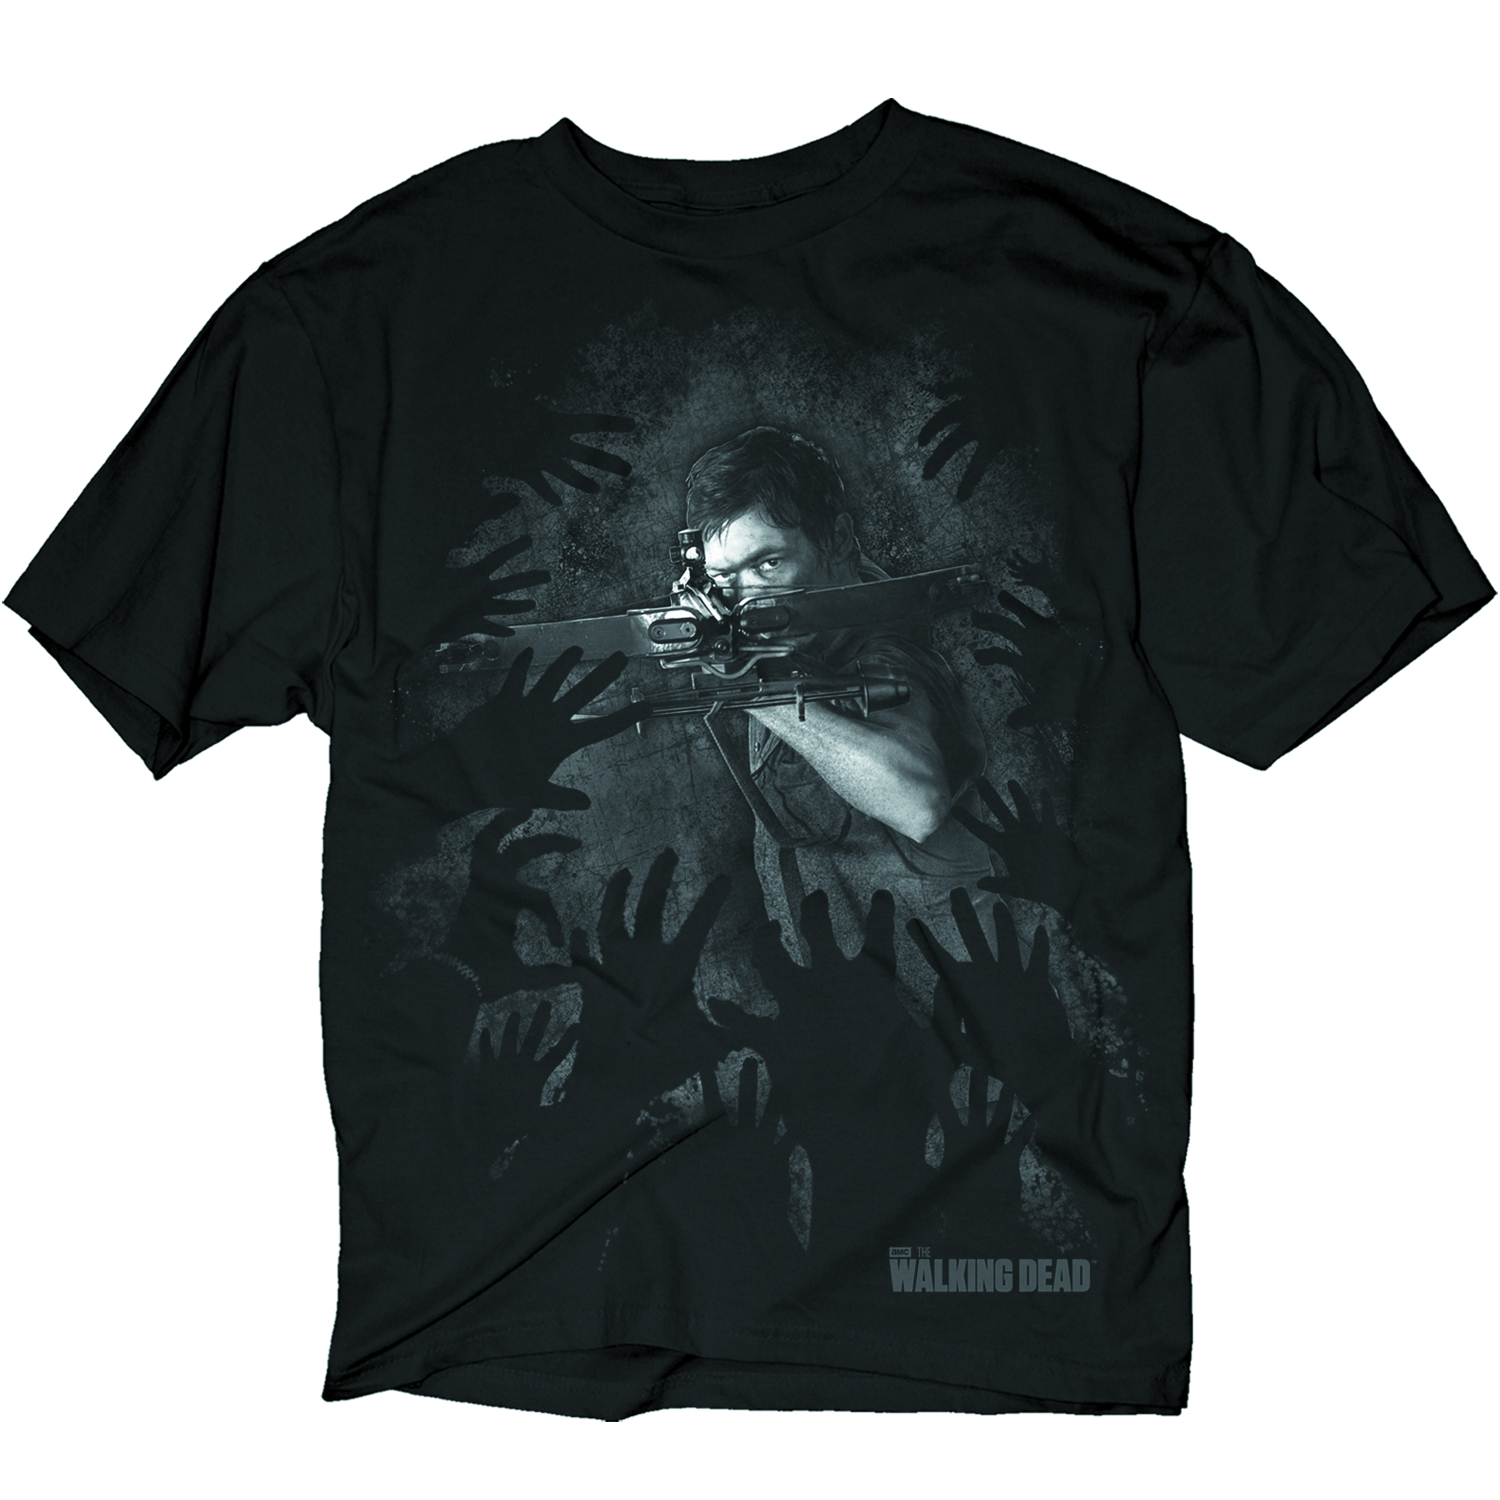 WALKING DEAD DARYL HANDS PX BLK T/S XXL